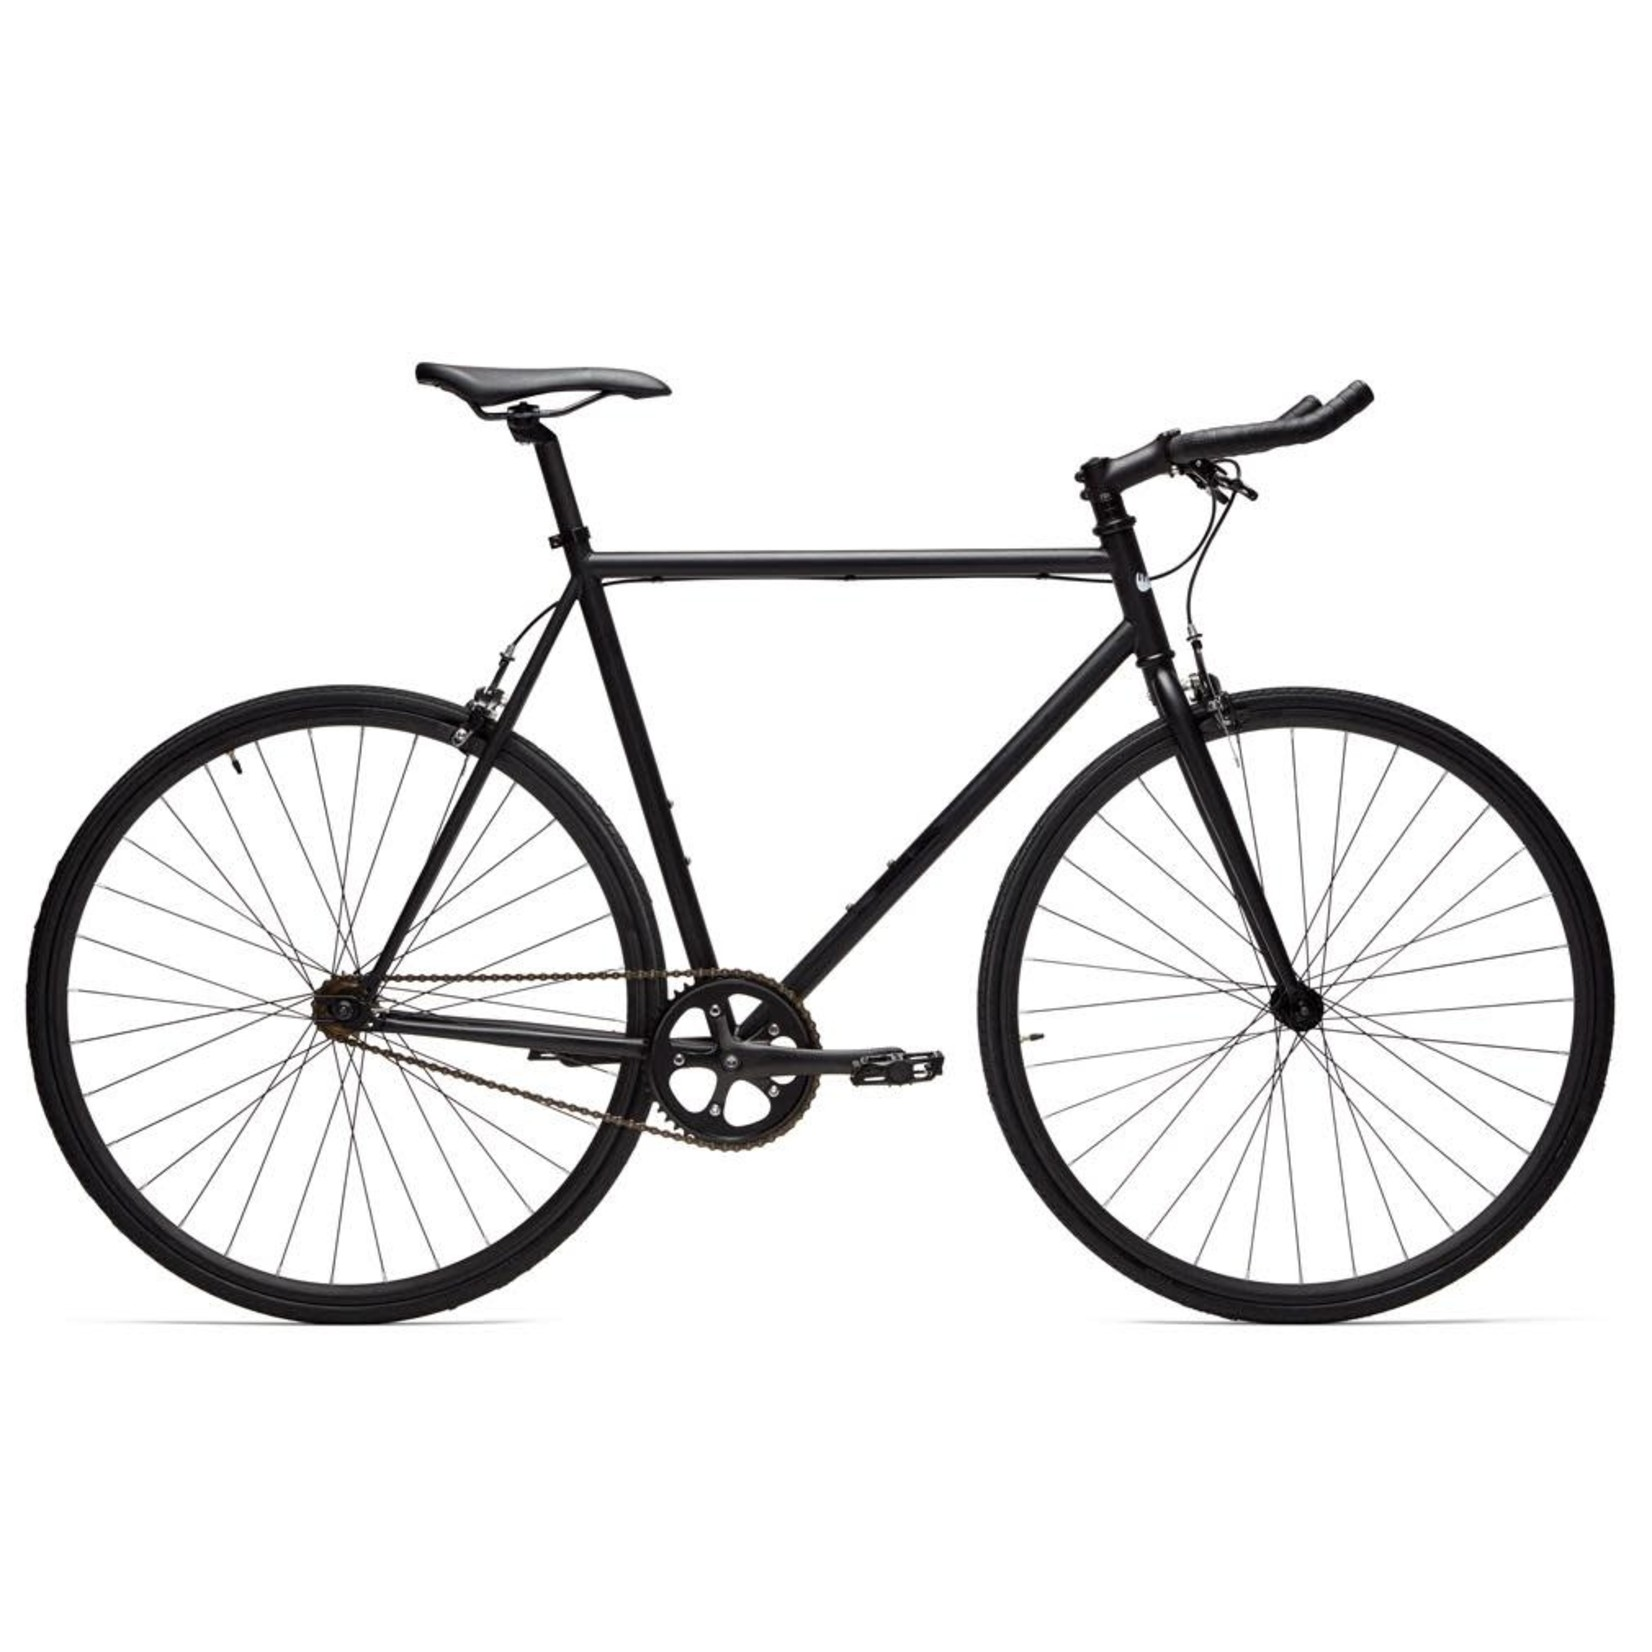 Moose Bicycle Fixie Porter (Matte Black) 58cm